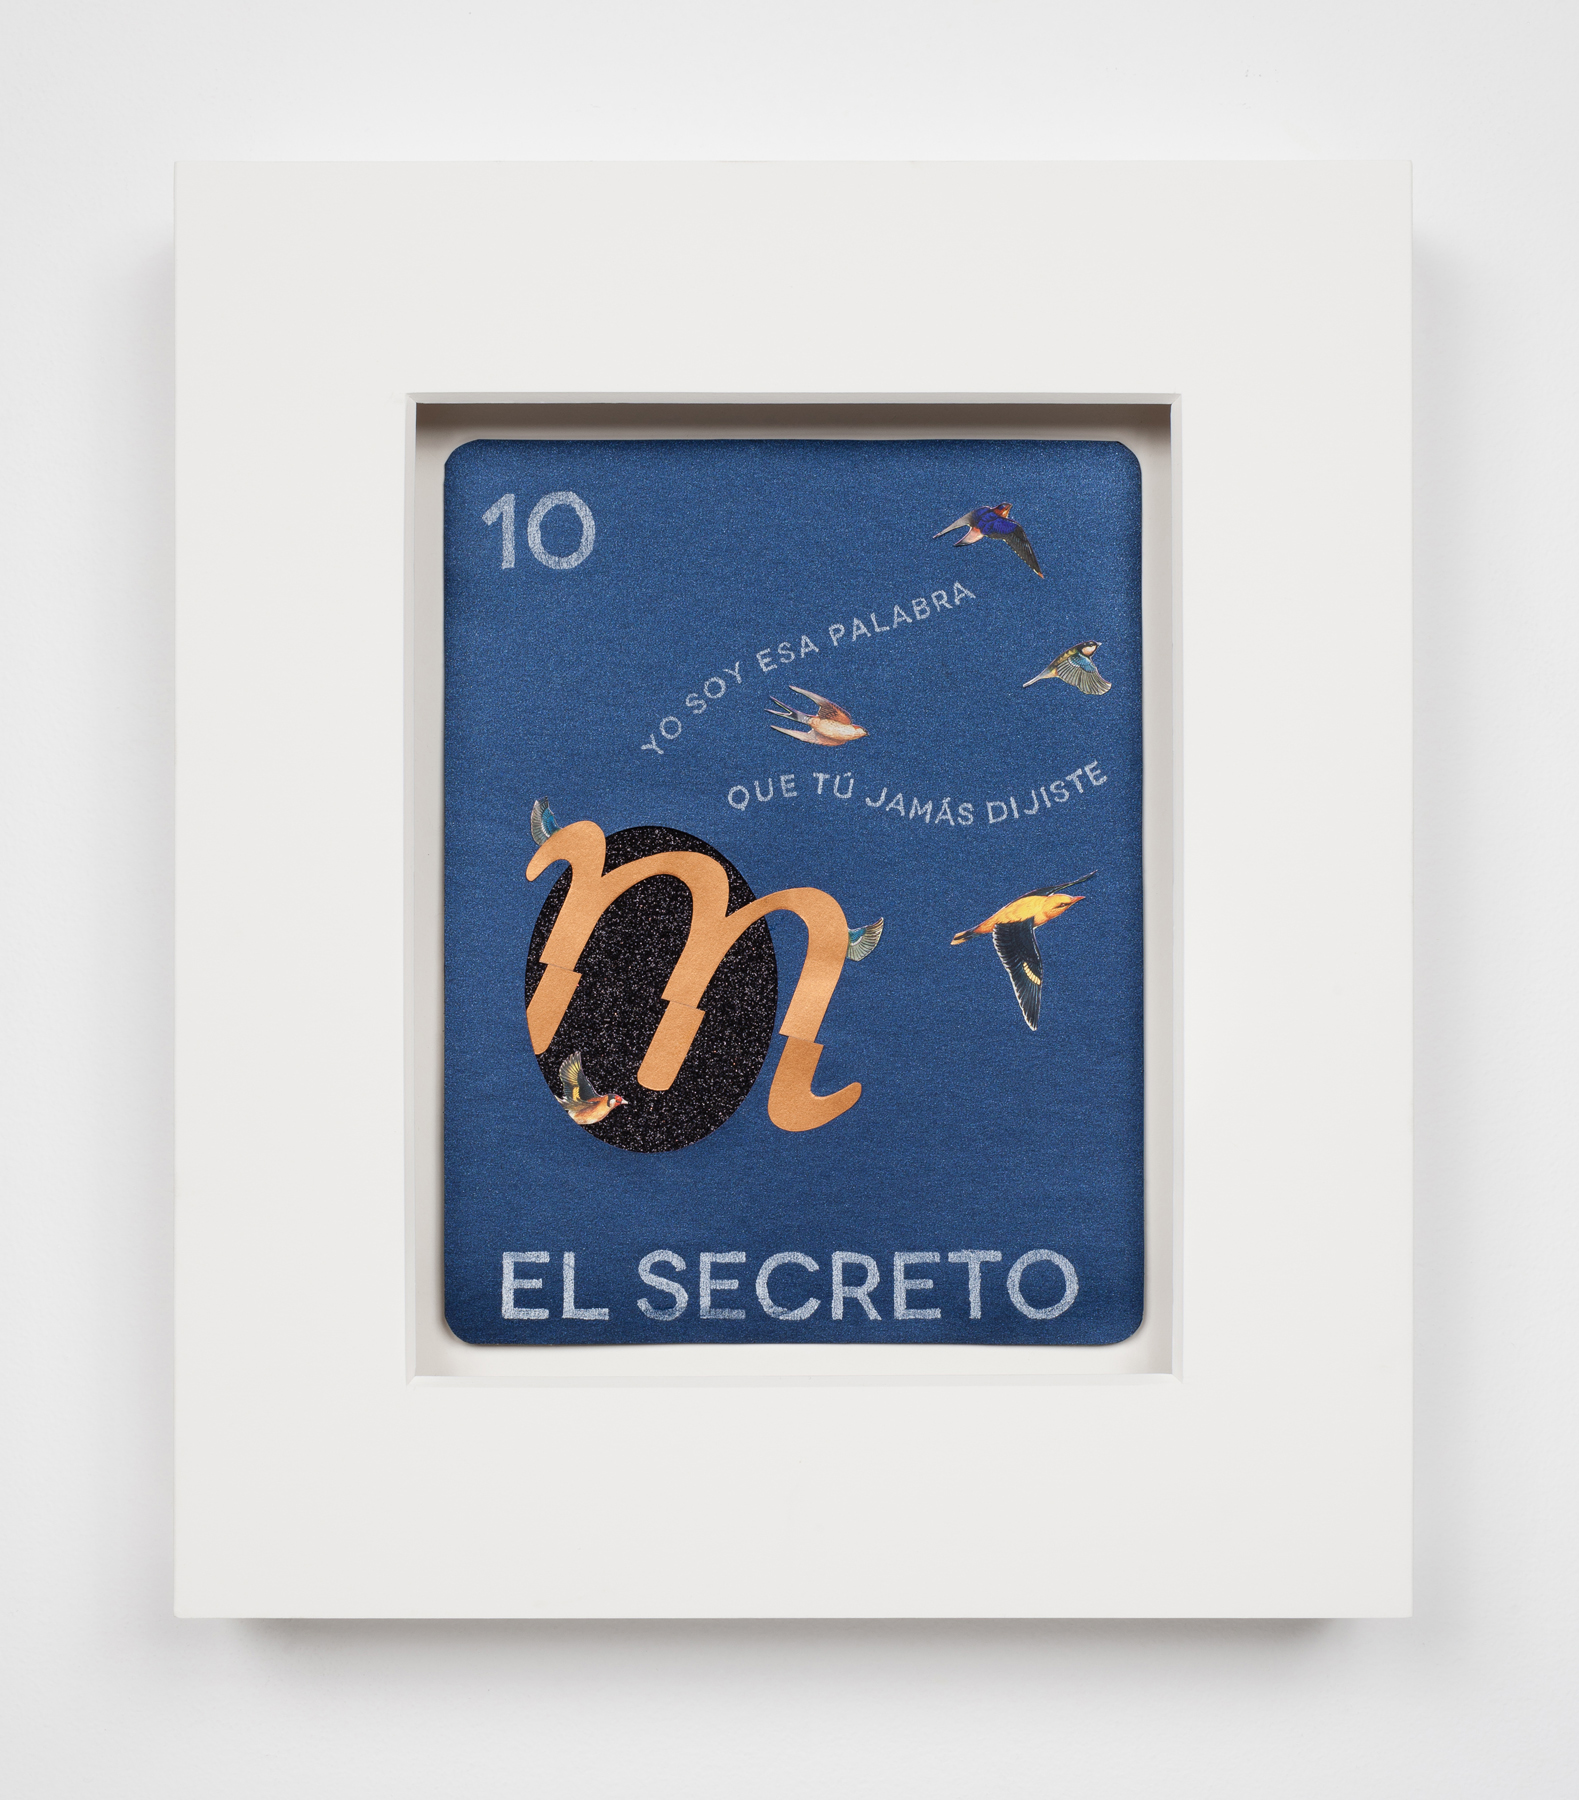 10 El Secreto (The Secret)